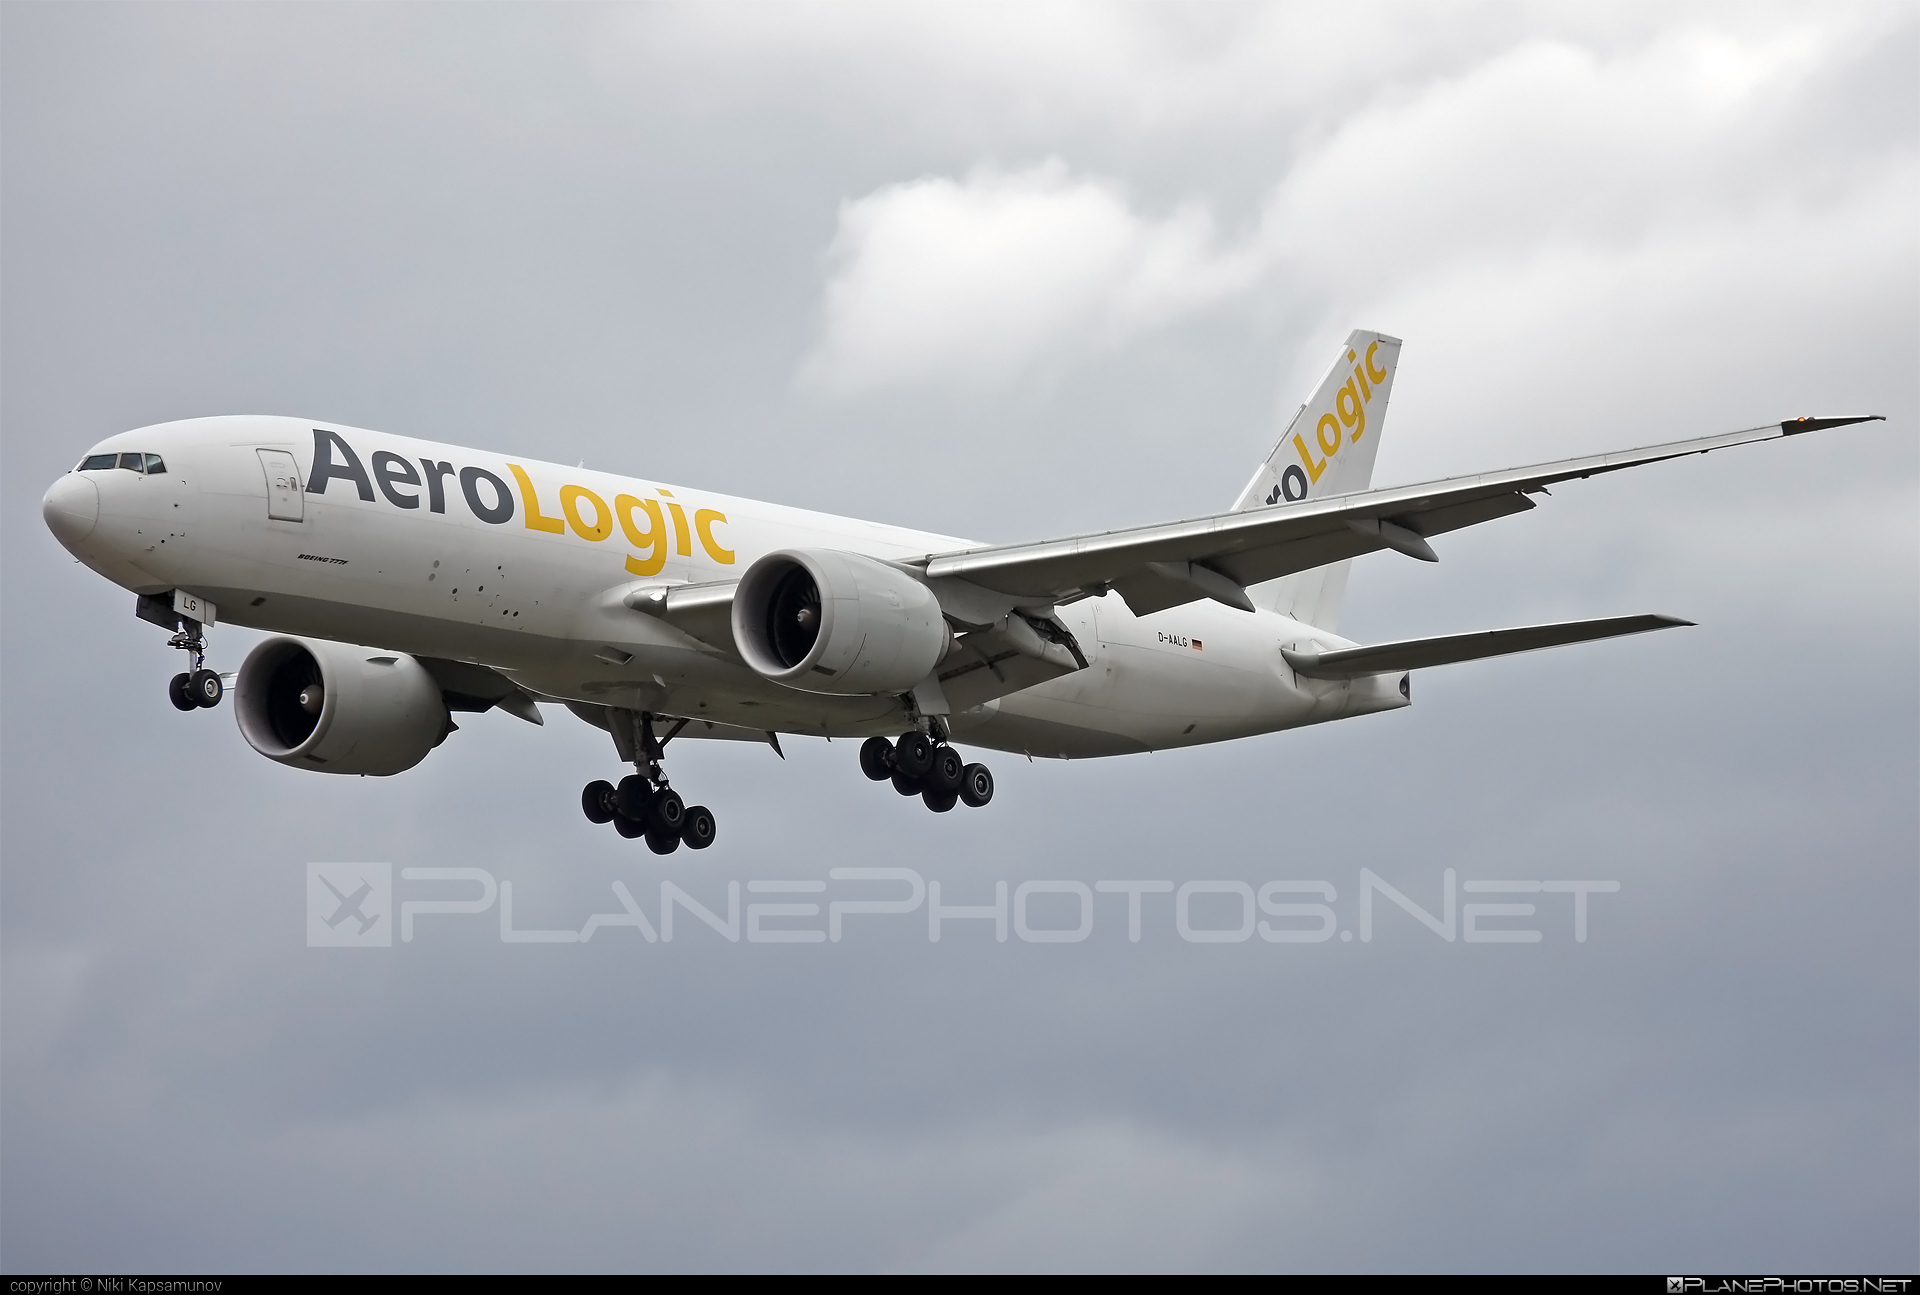 Boeing 777F - D-AALG operated by AeroLogic #aerologic #b777 #b777f #b777freighter #boeing #boeing777 #tripleseven